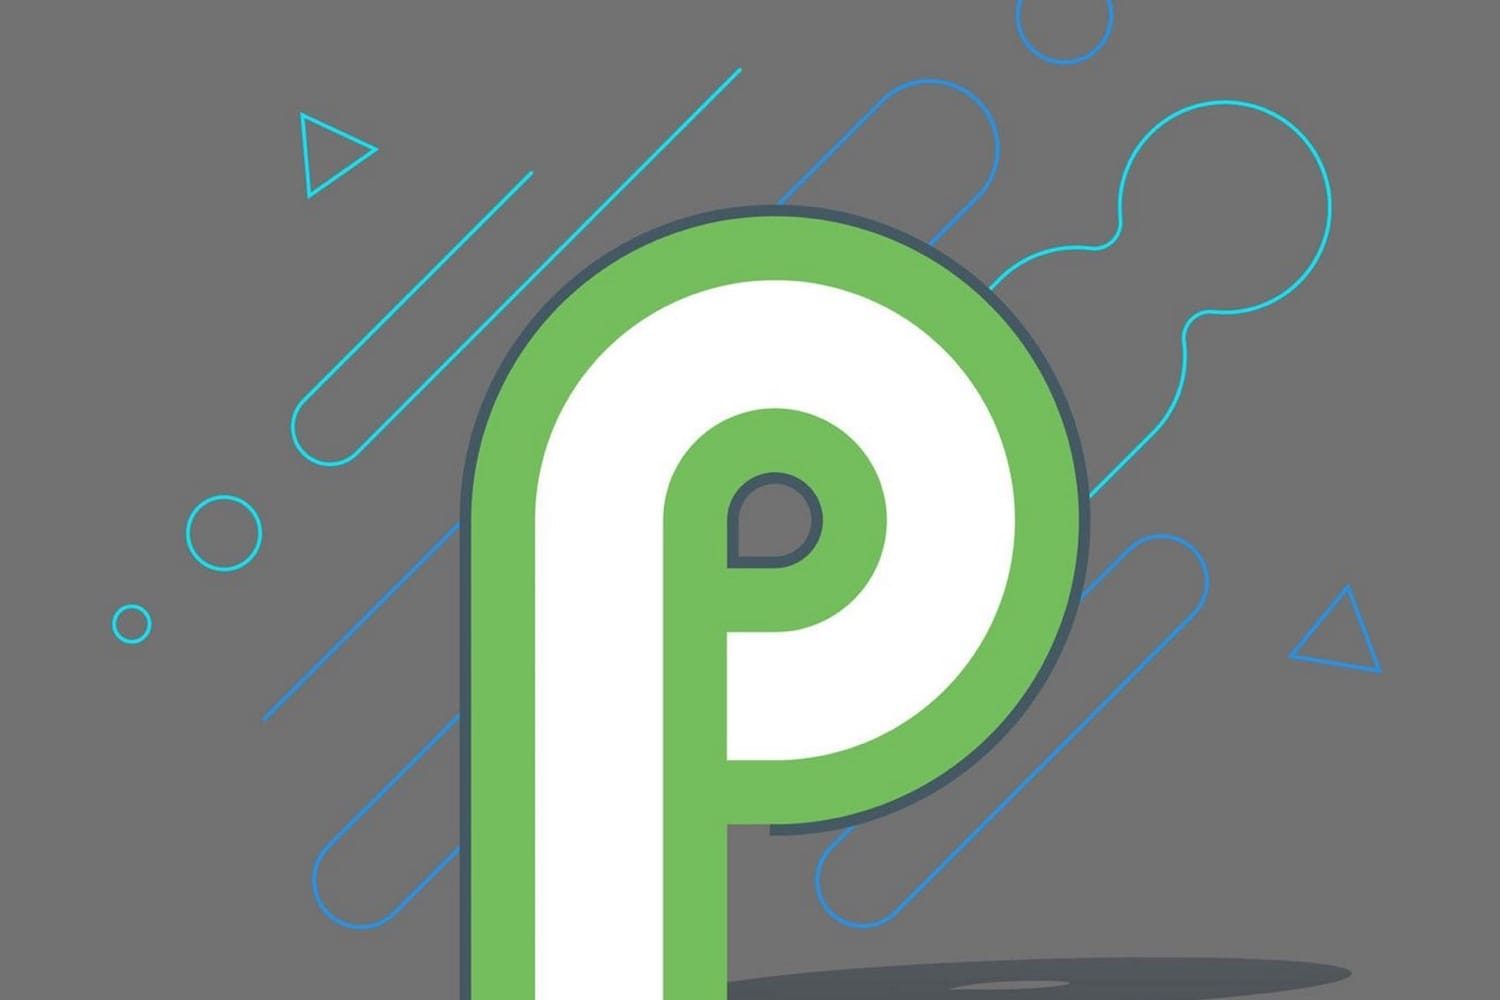 Google Released The Third Beta Version Of Android P A Complete List